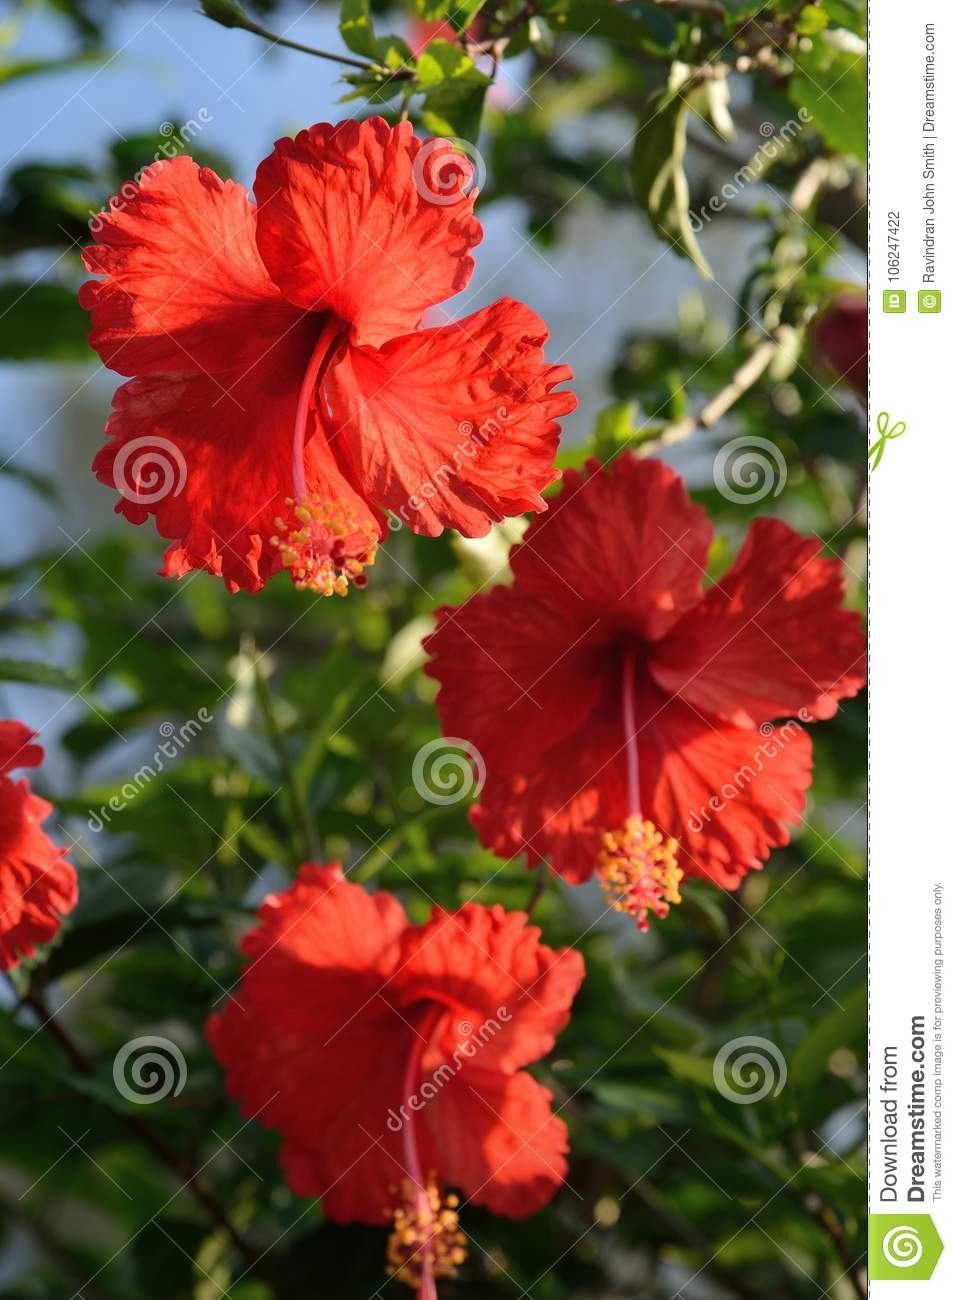 Hibiscus is the national flower of malaysia stock photo image of royalty free stock photo izmirmasajfo Choice Image